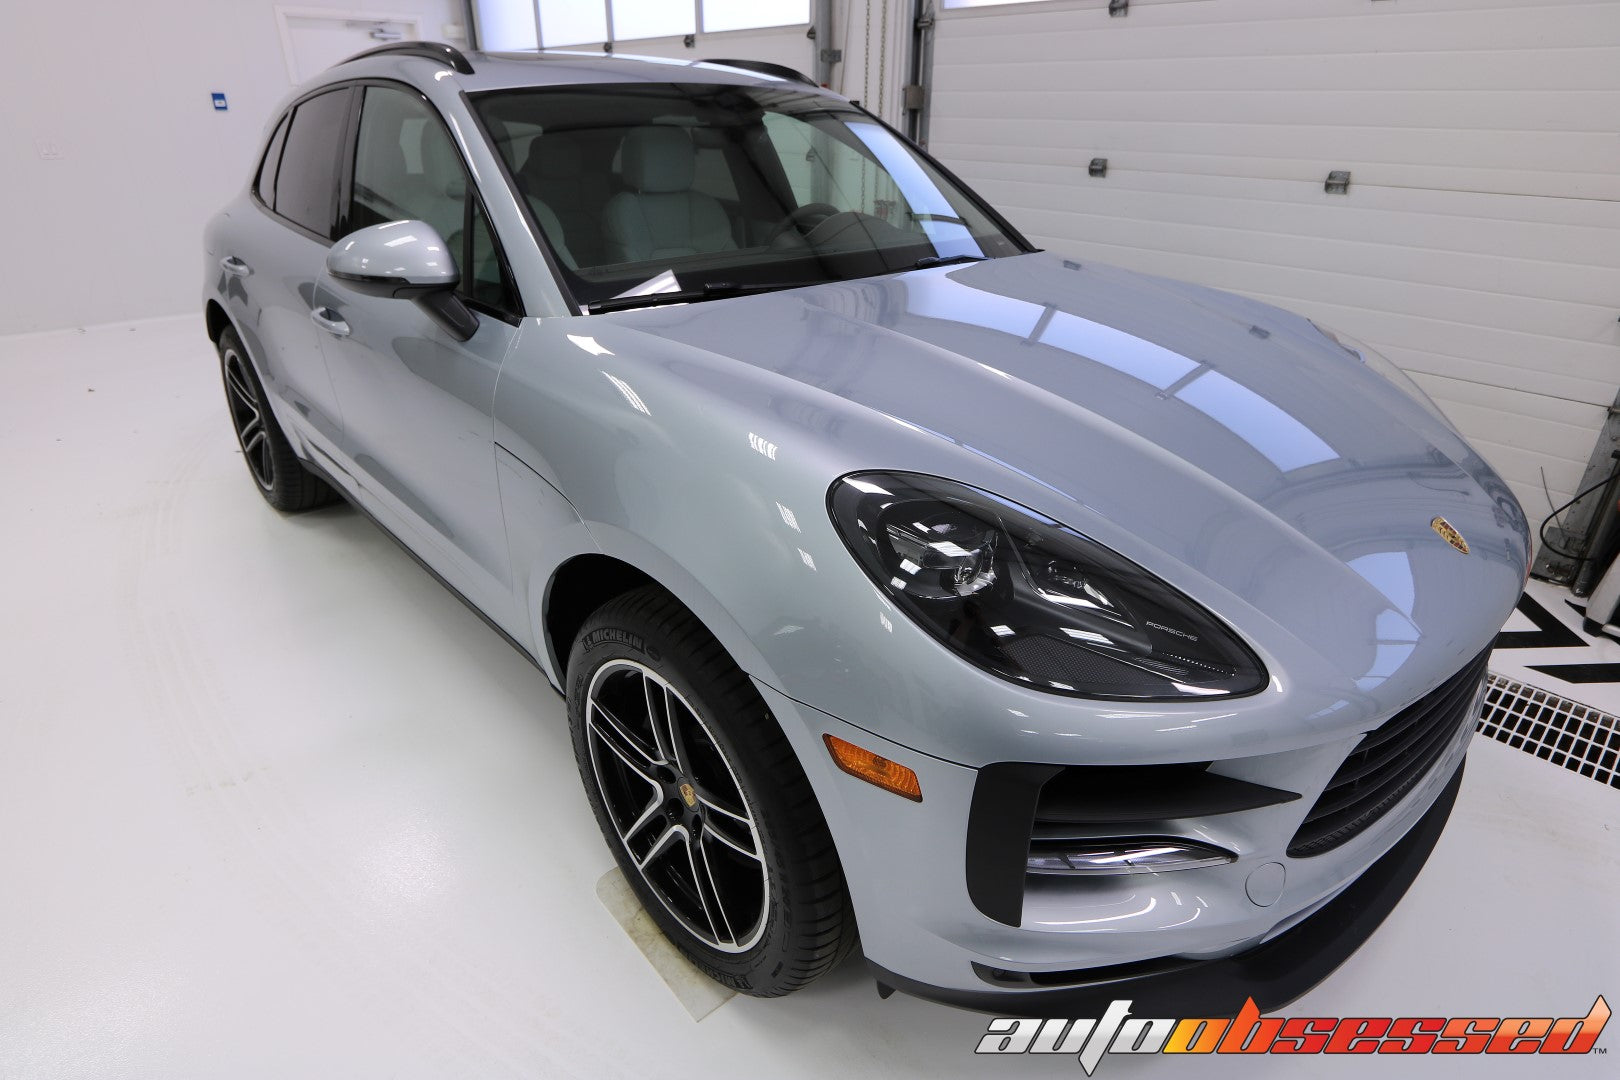 2020 Porsche Macan S New Vehicle Prep Car Detailing - Auto Obsessed